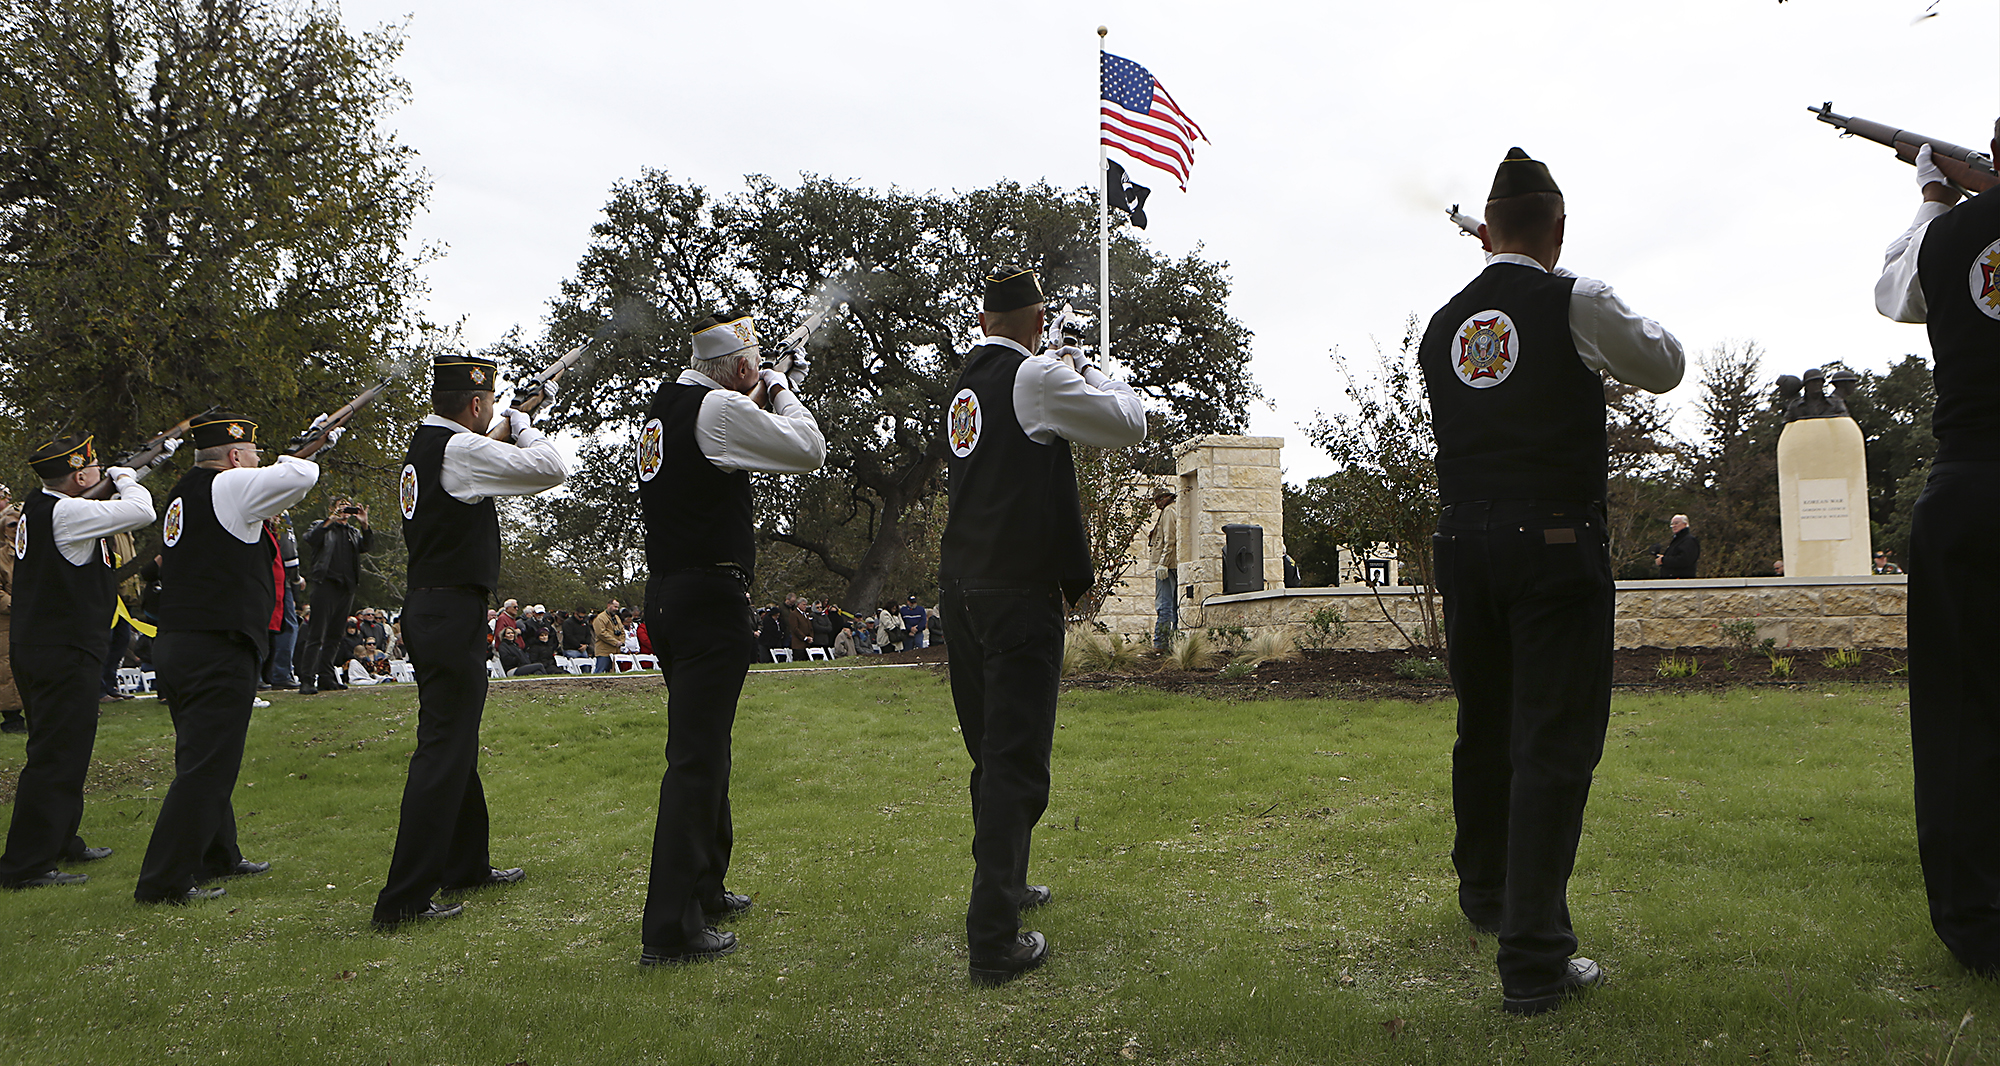 Boerne s revamped Veterans Plaza gets warm welcome from chilly crowd -  ExpressNews.com 36d991684